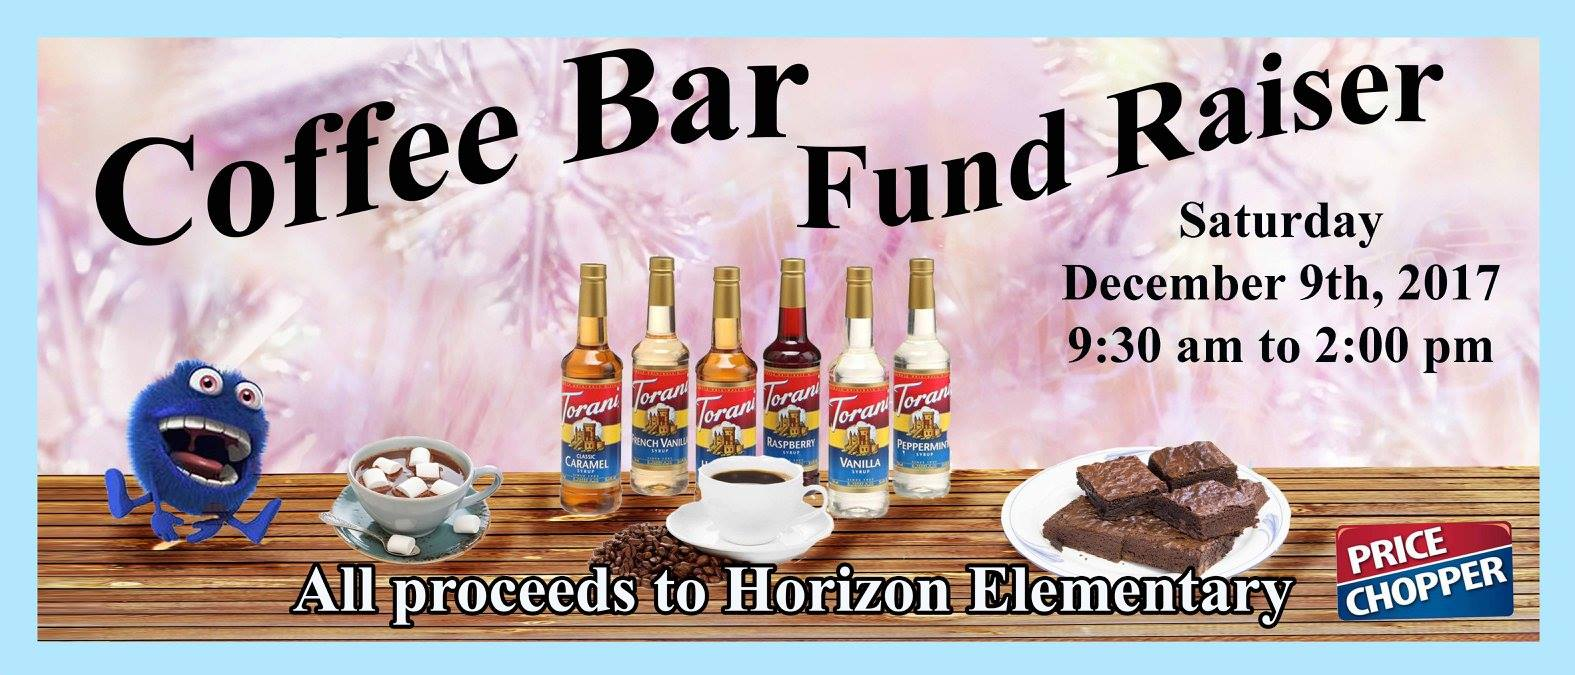 Price Chopper Coffee Bar - Horizon Elementary